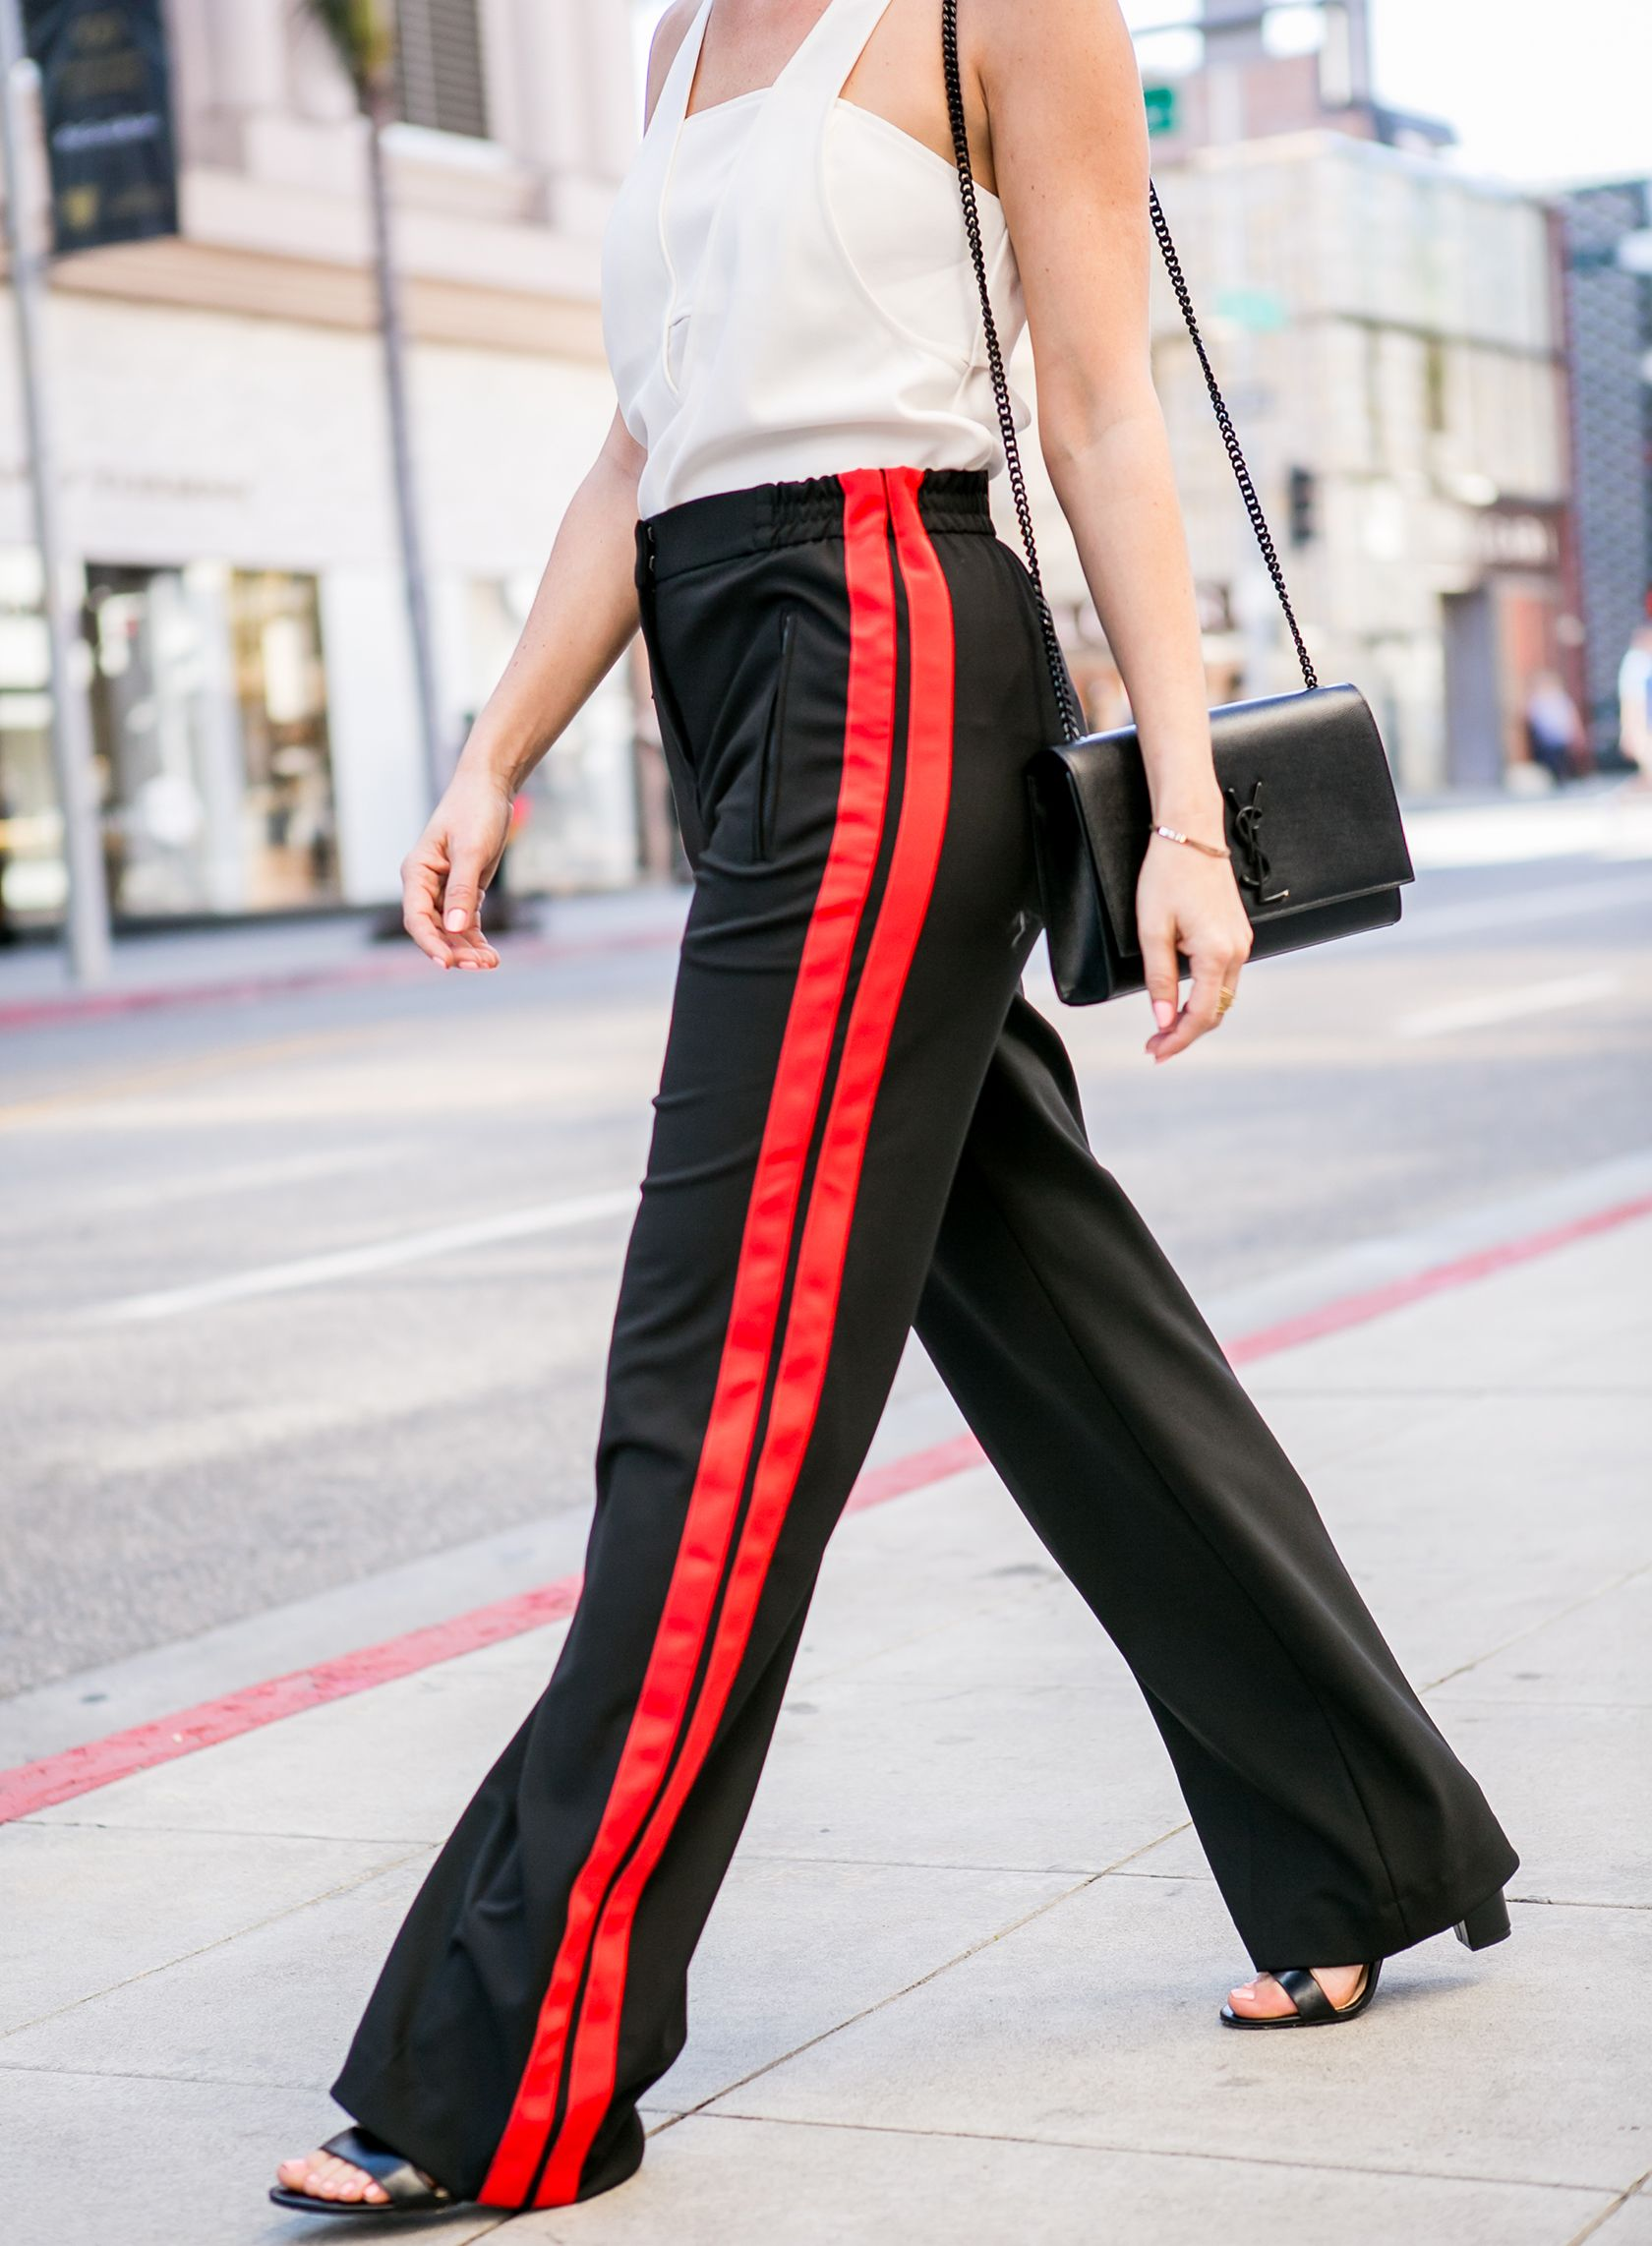 2019 year for women- Tipshow Fashion to wear oxfords